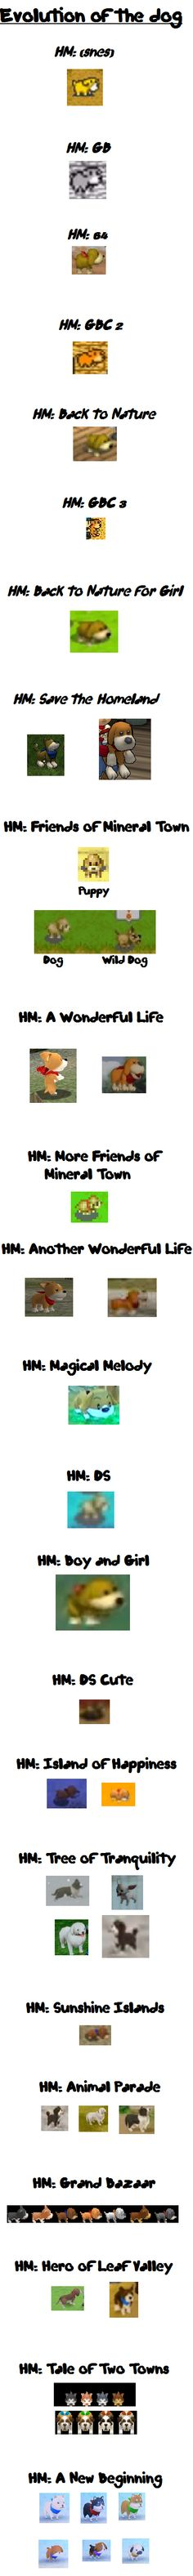 every harvest moon game dog(: evolution of the dog haha